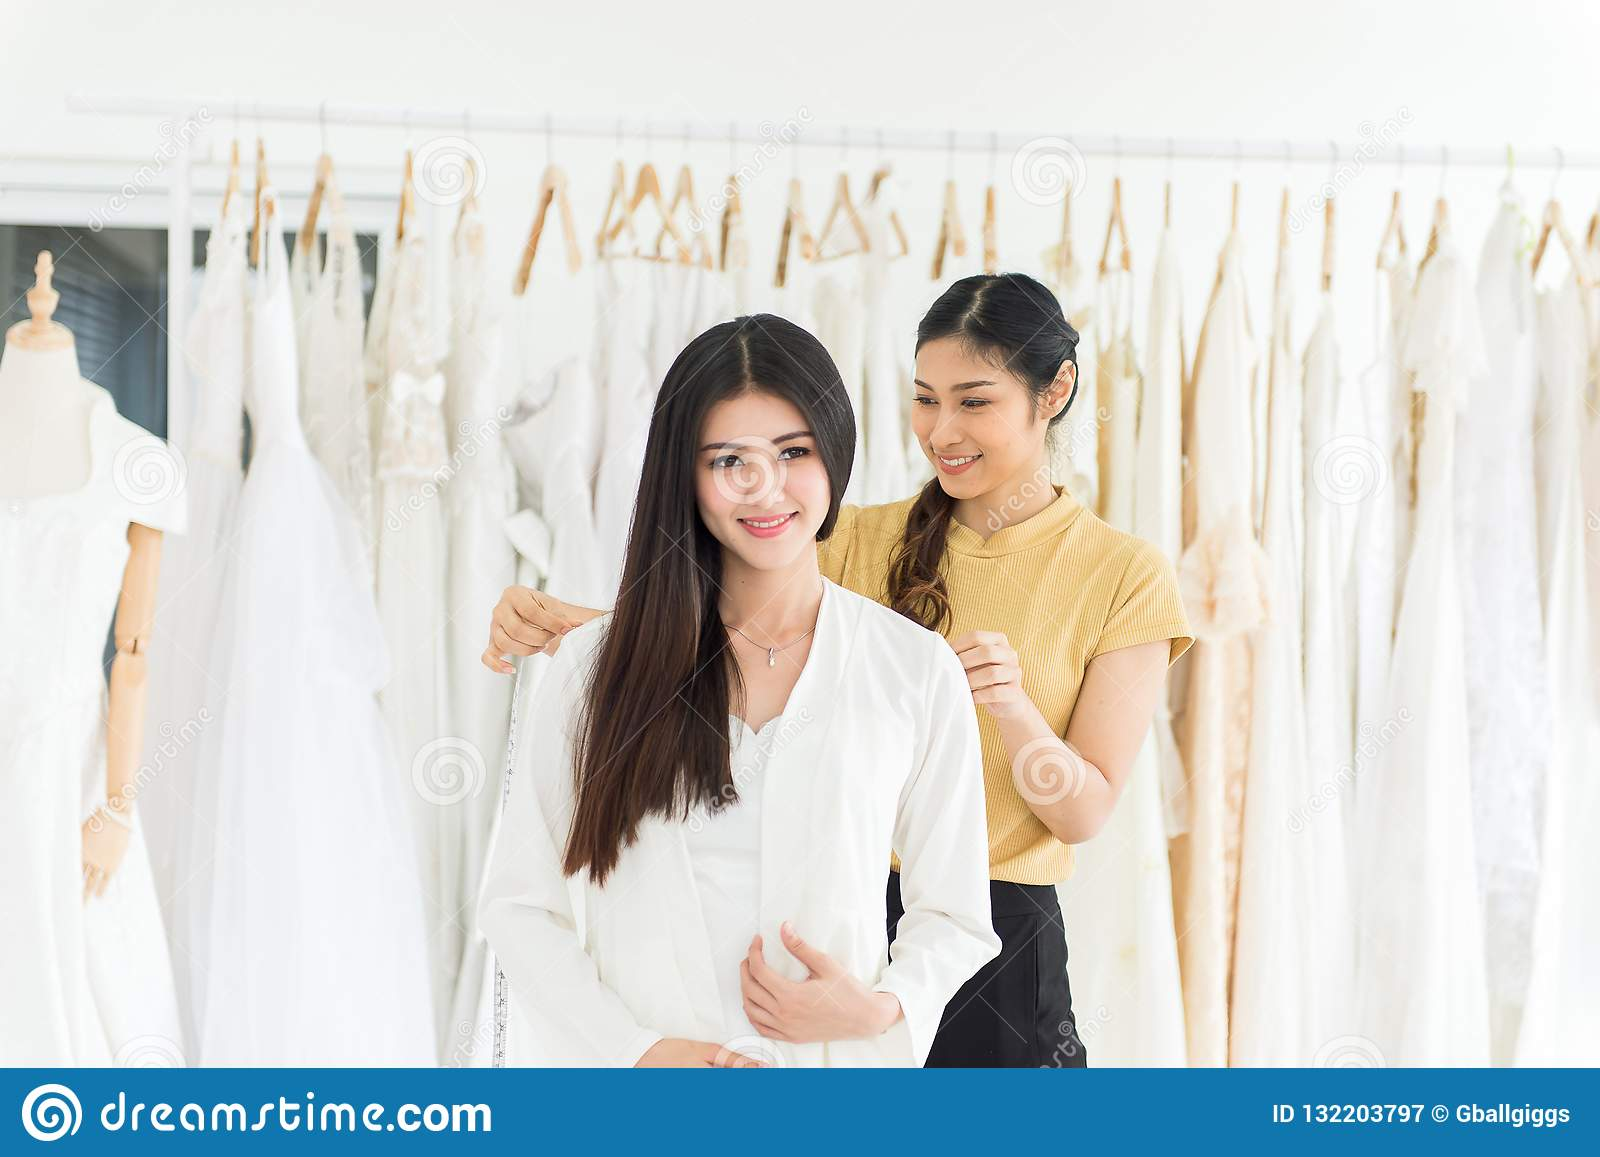 Asian Female Bride Trying On Wedding Dress Woman Designer Making Adjustment With Measuring Tape In Fashion Studio Stock Image Image Of Happy Caucasian 132203797